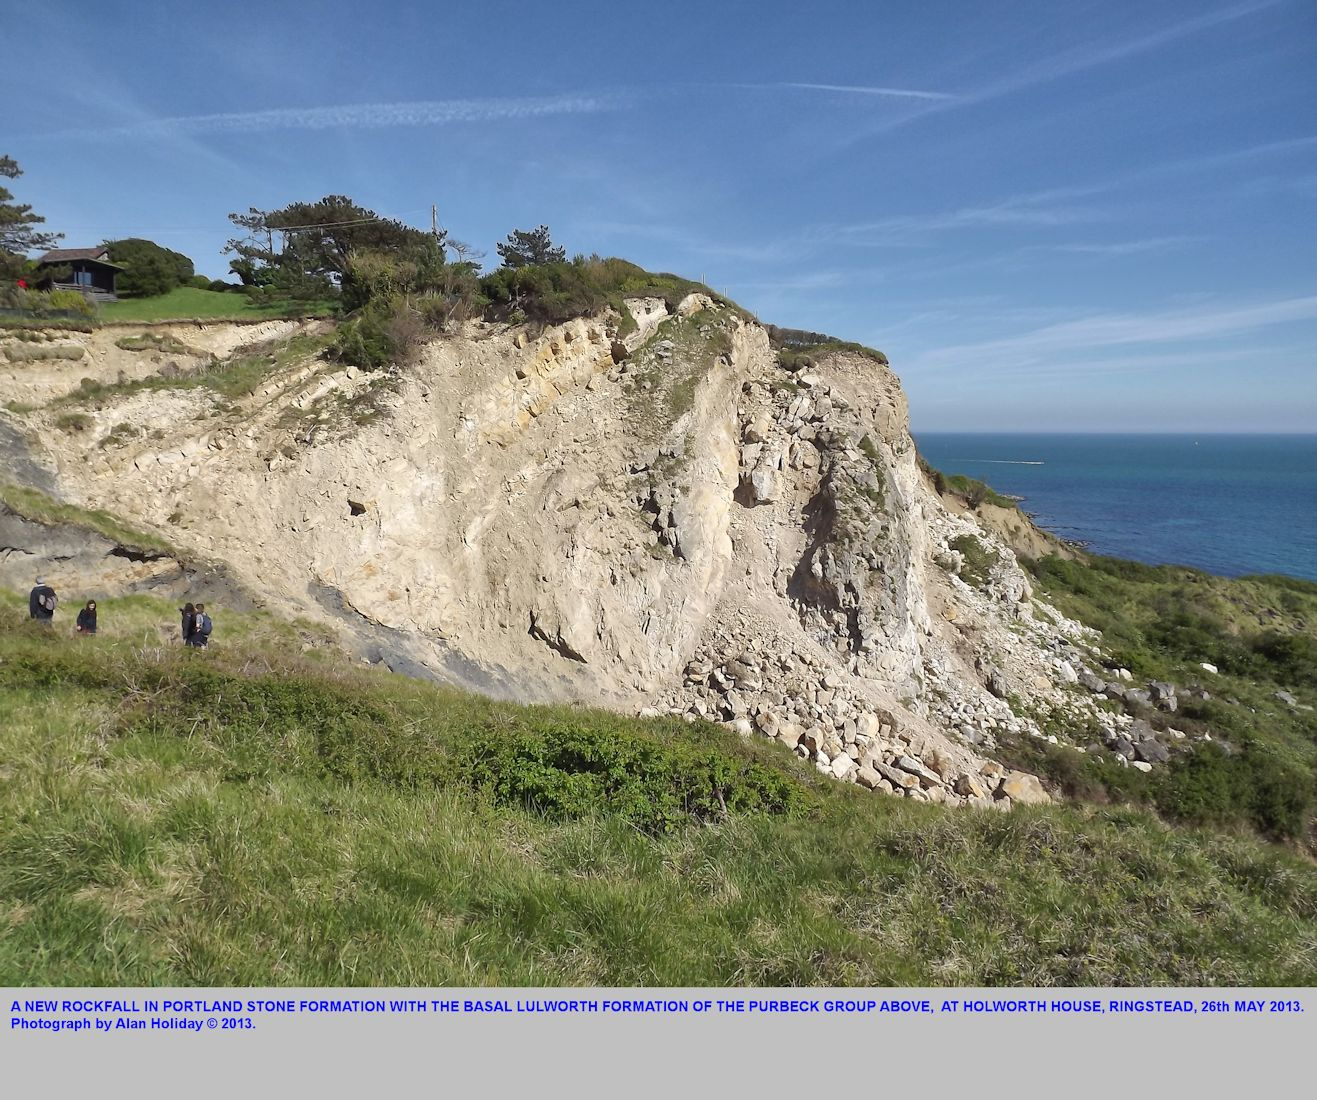 A rock fall in the Portland and Purbeck cliff section at Holworth House, Ringstead Bay, Dorset, 26th May 2013, photograph by Alan Holiday